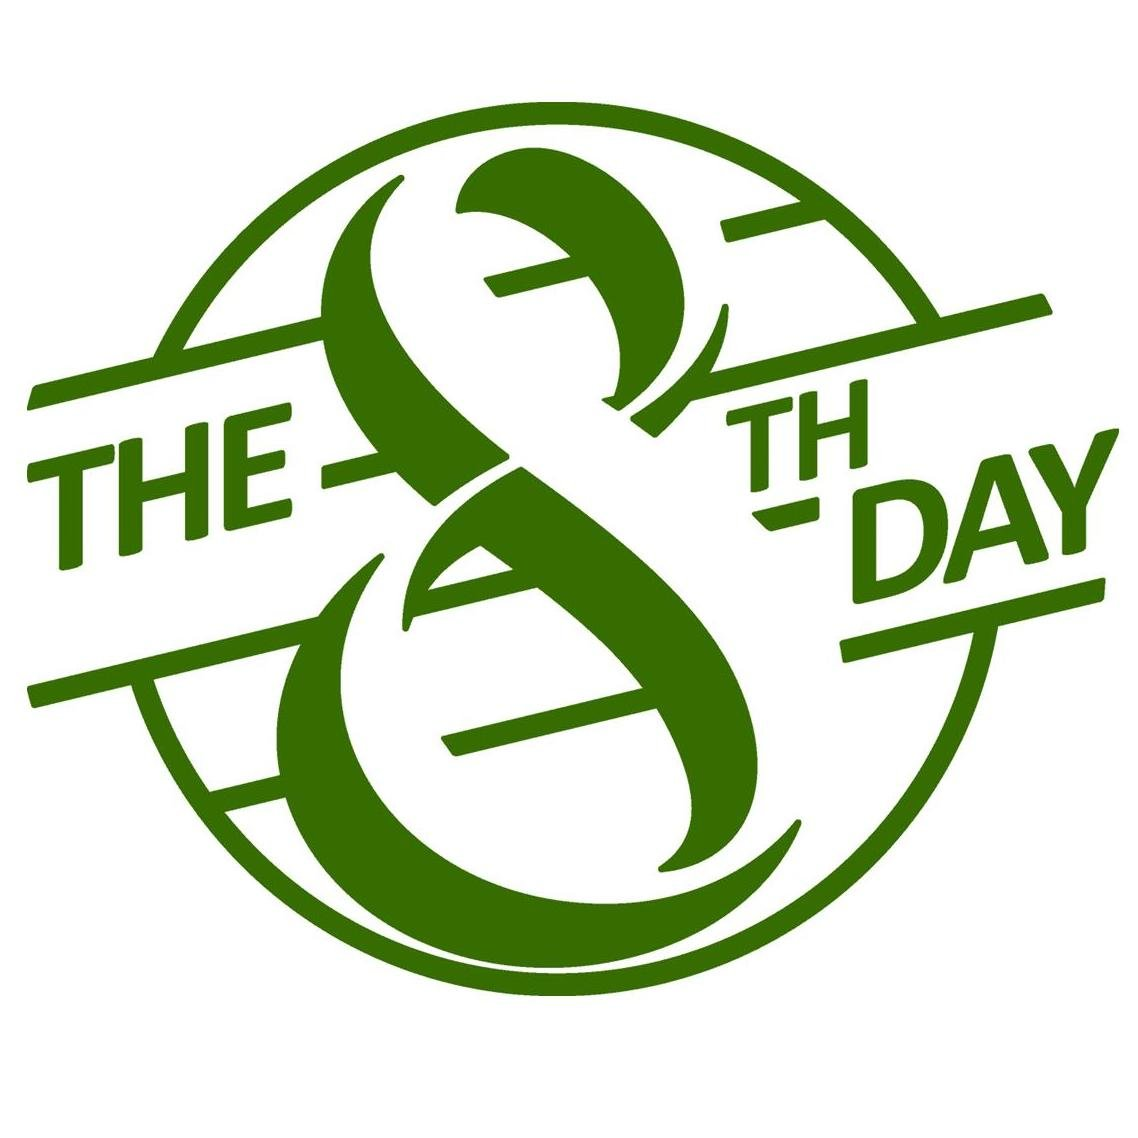 On The Eighth Day Co-operative Ltd logo